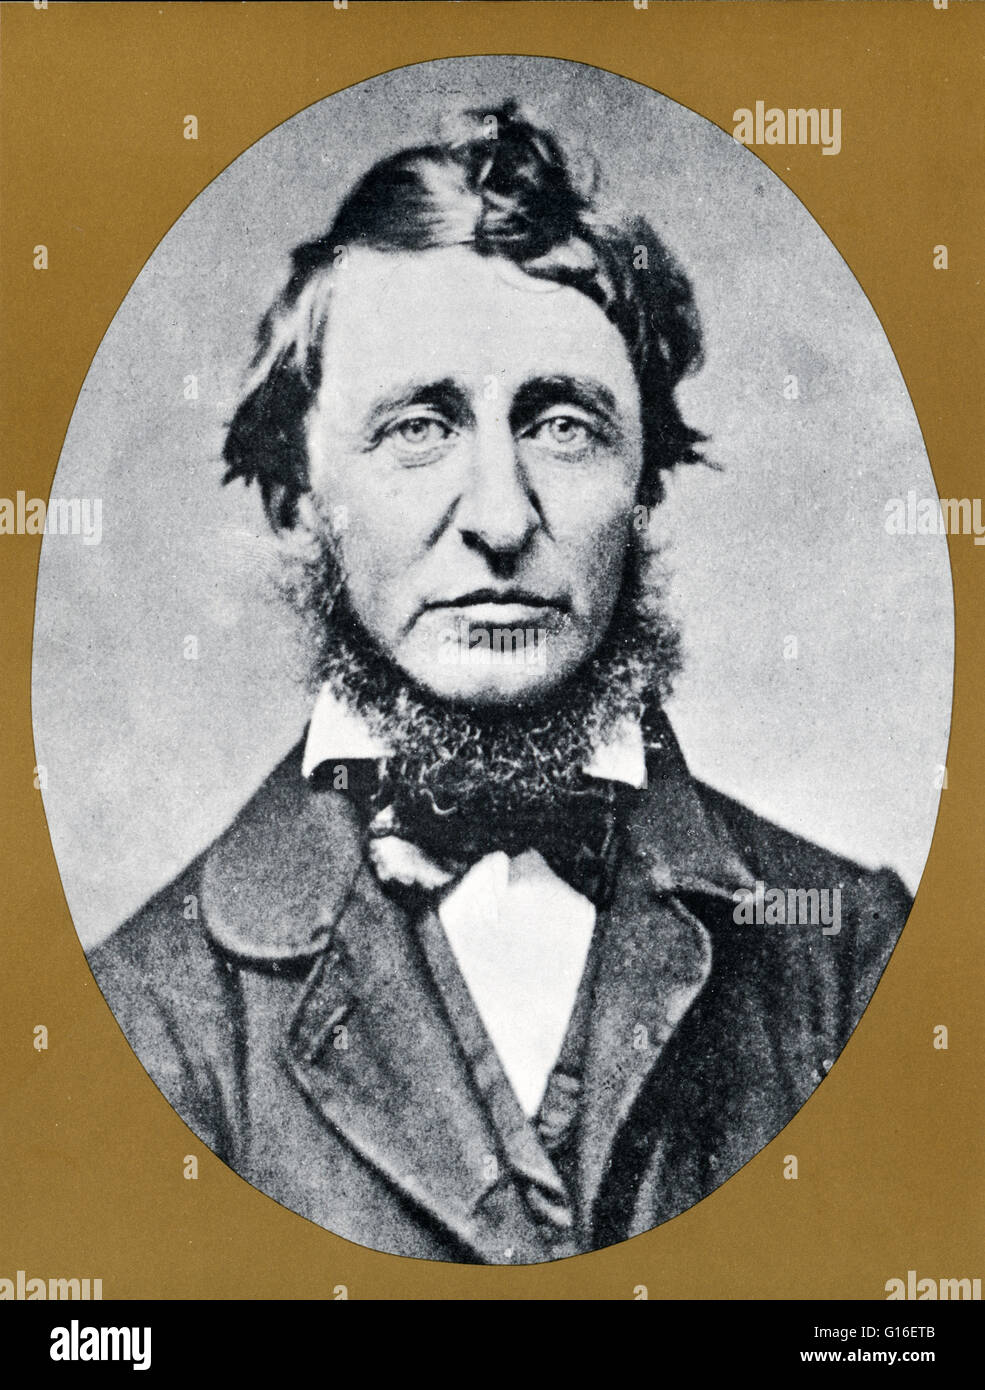 Henry David Thoreau July 12 1817 May 6 1862 Was An